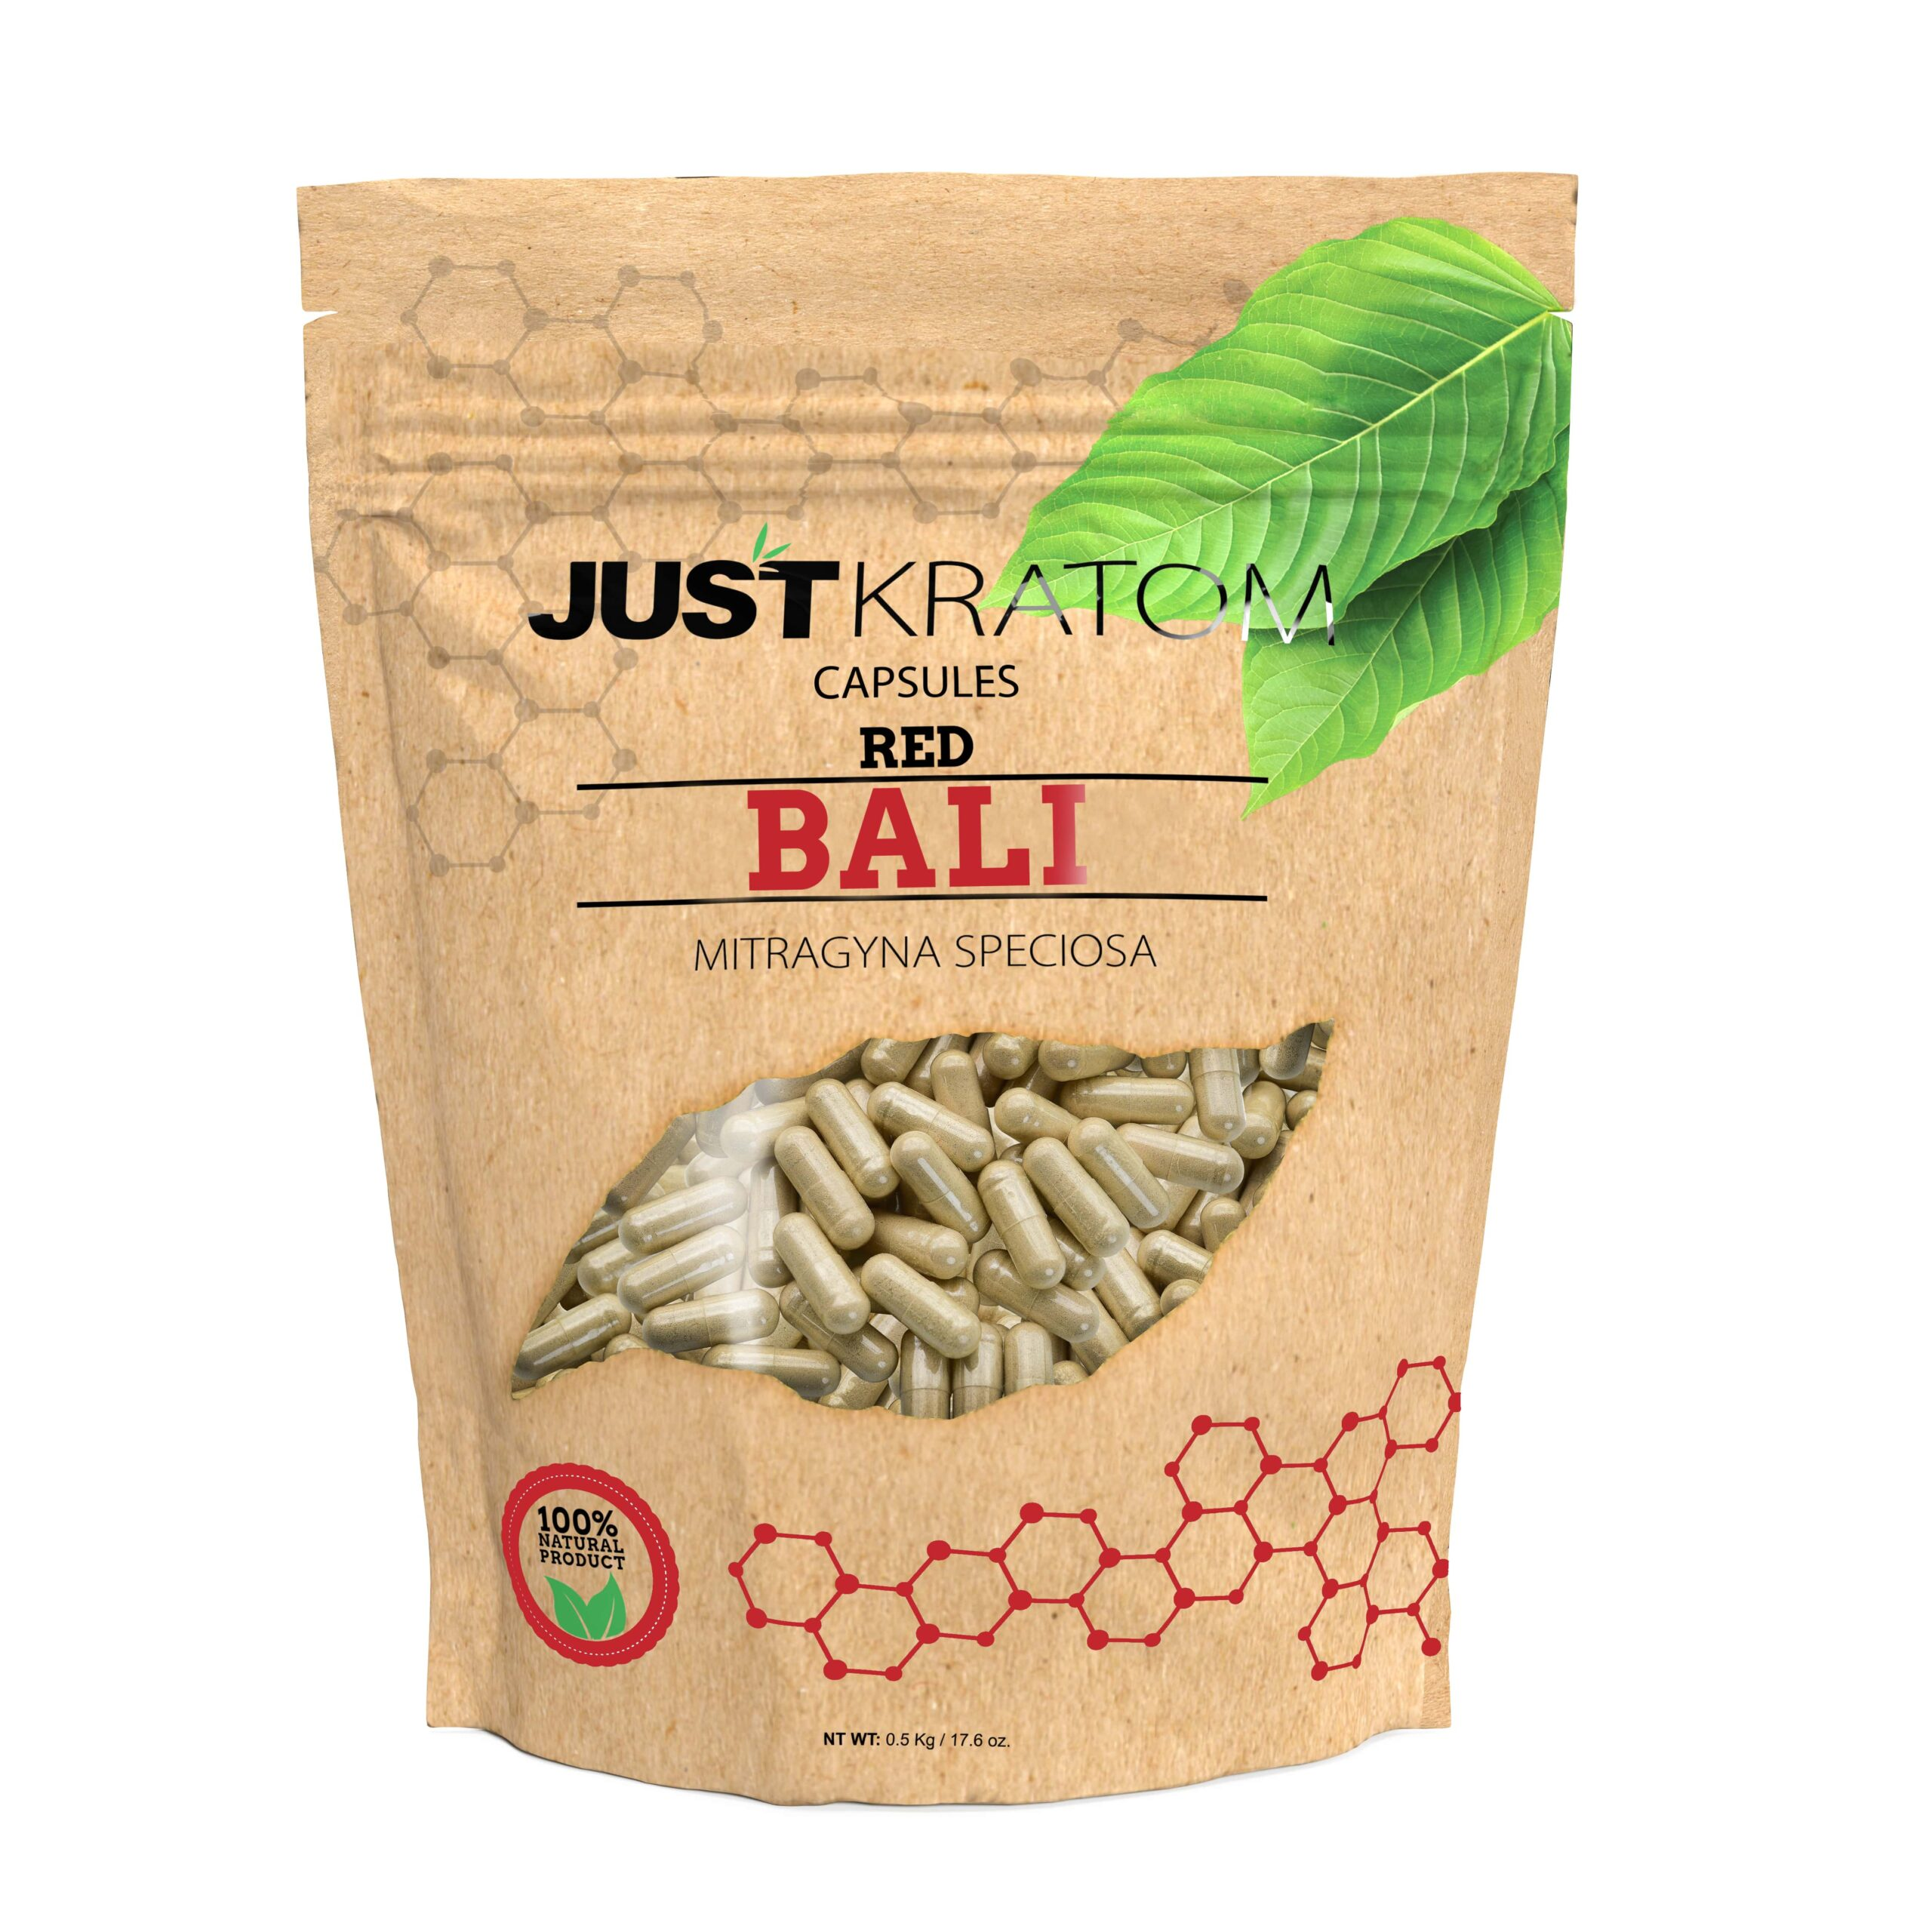 What Is Green Malay Kratom